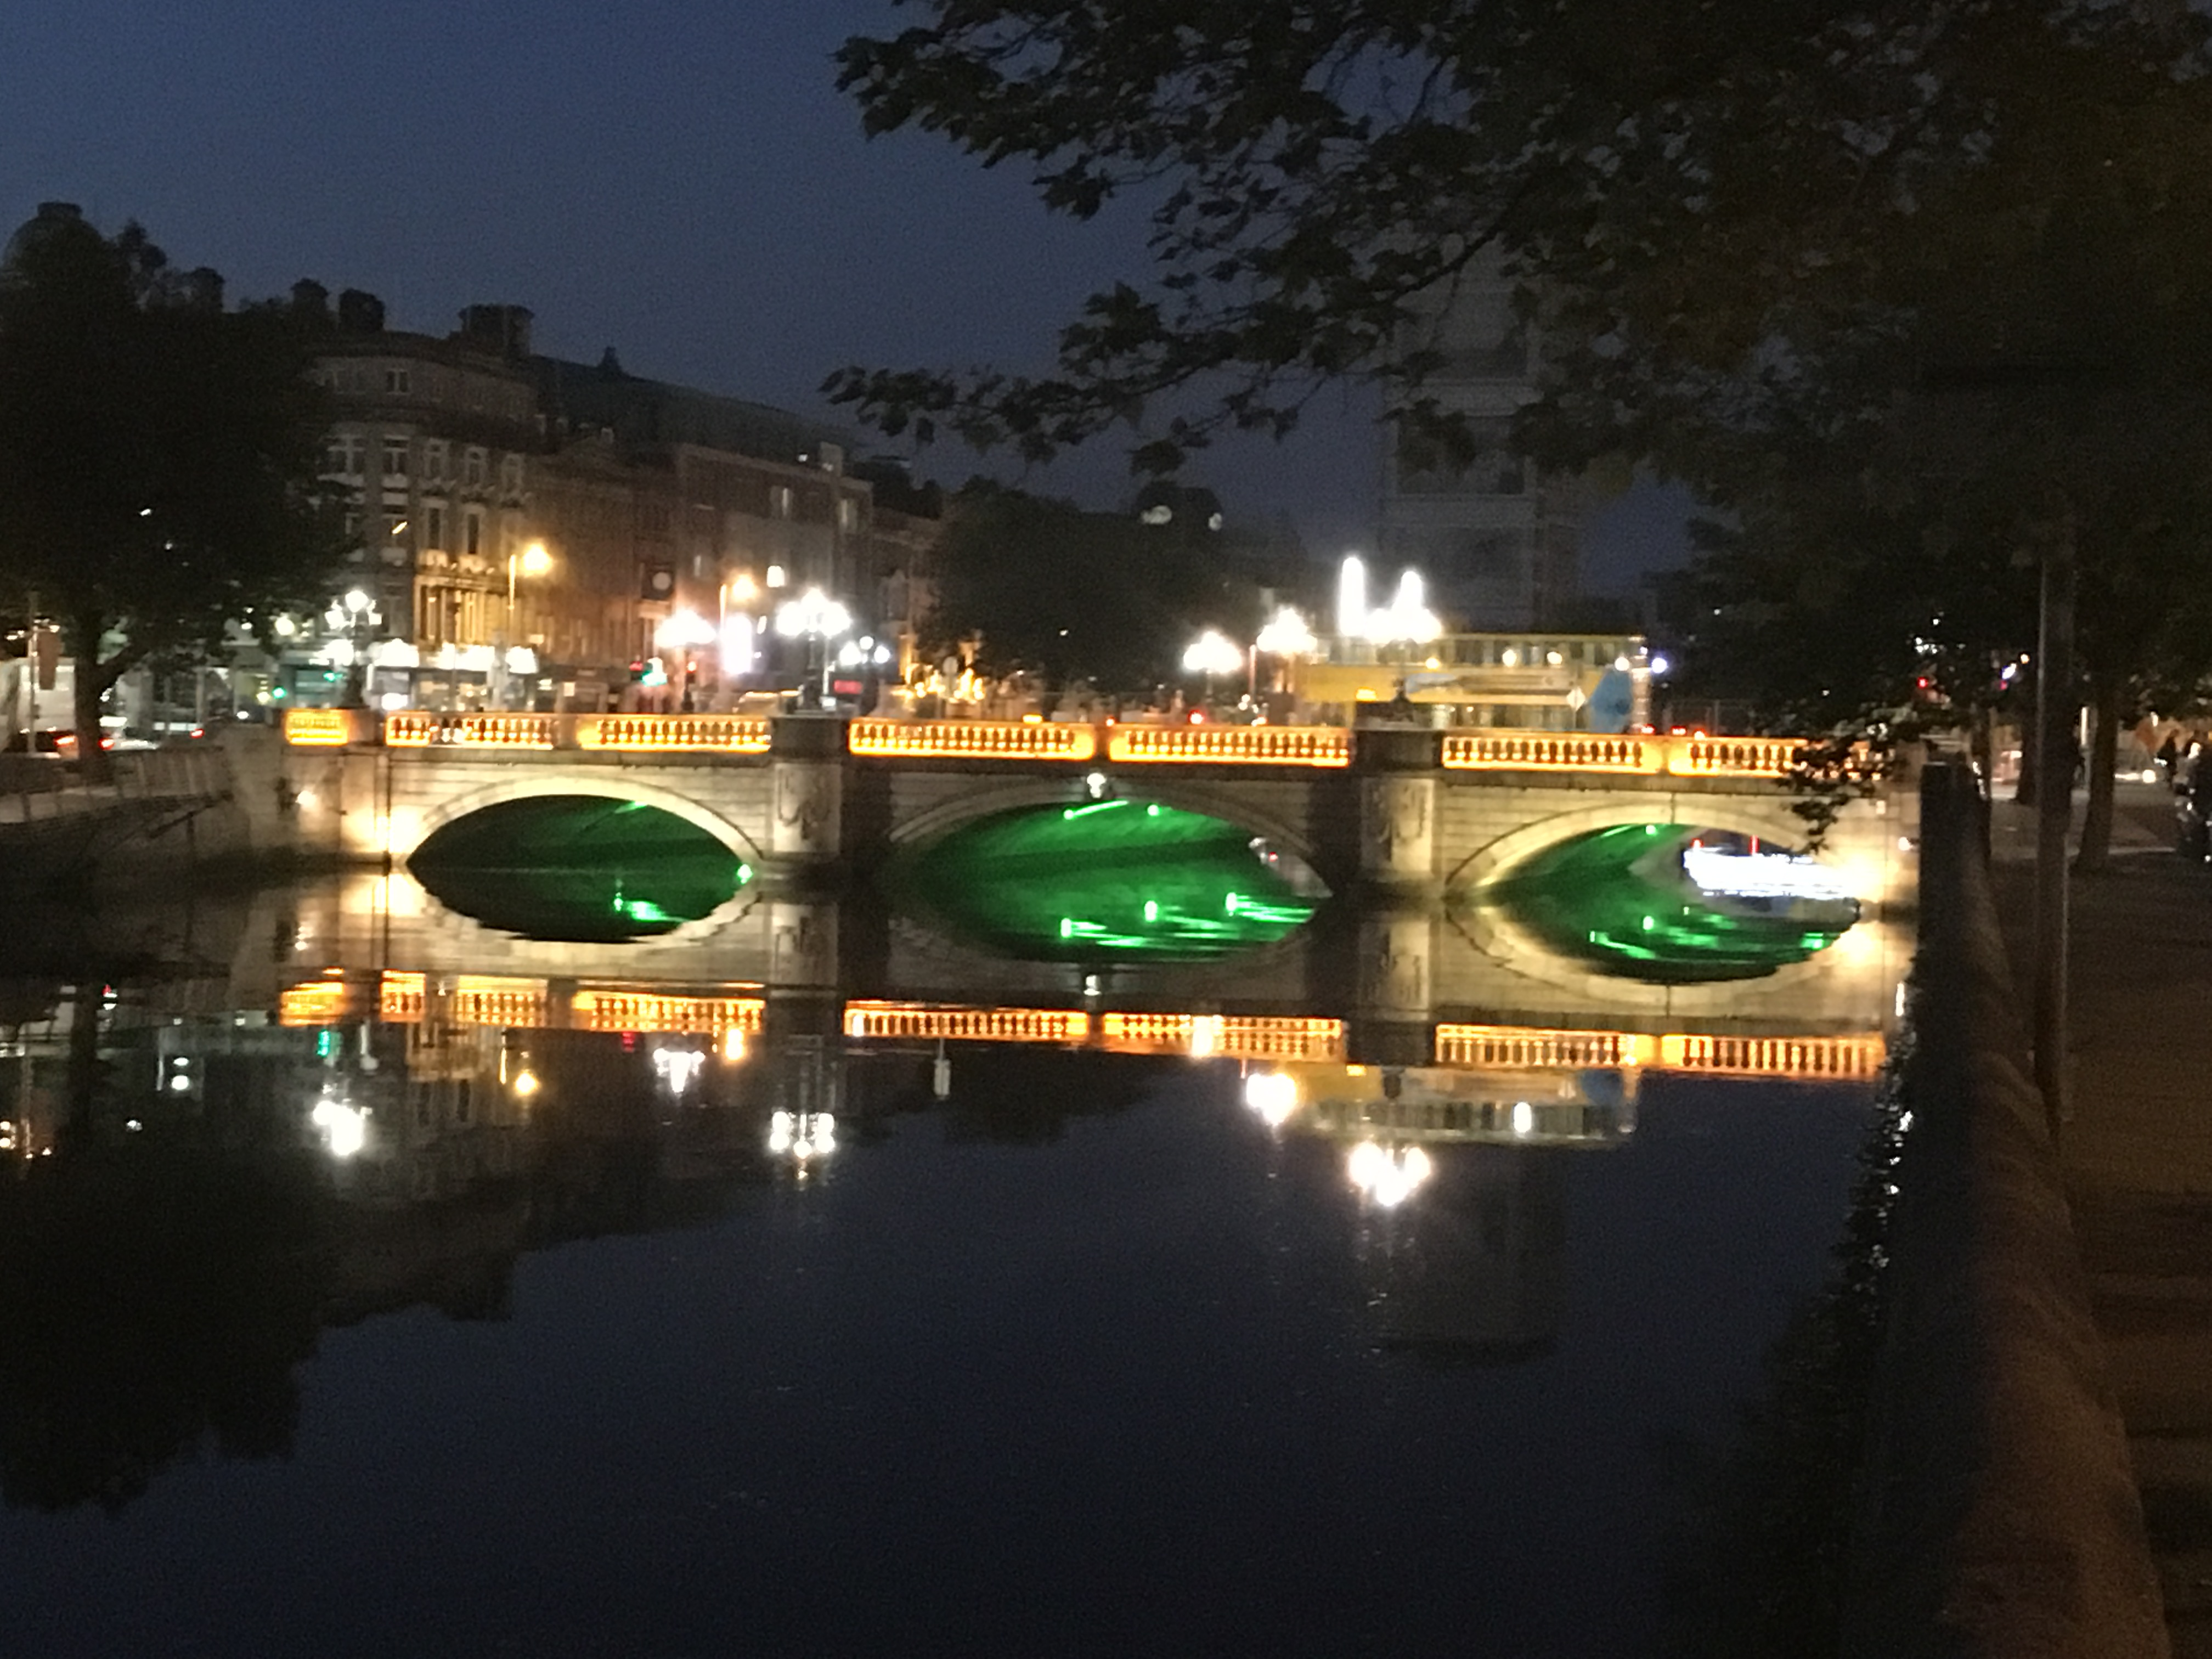 A picture of an illuminated bridge in Dublin.